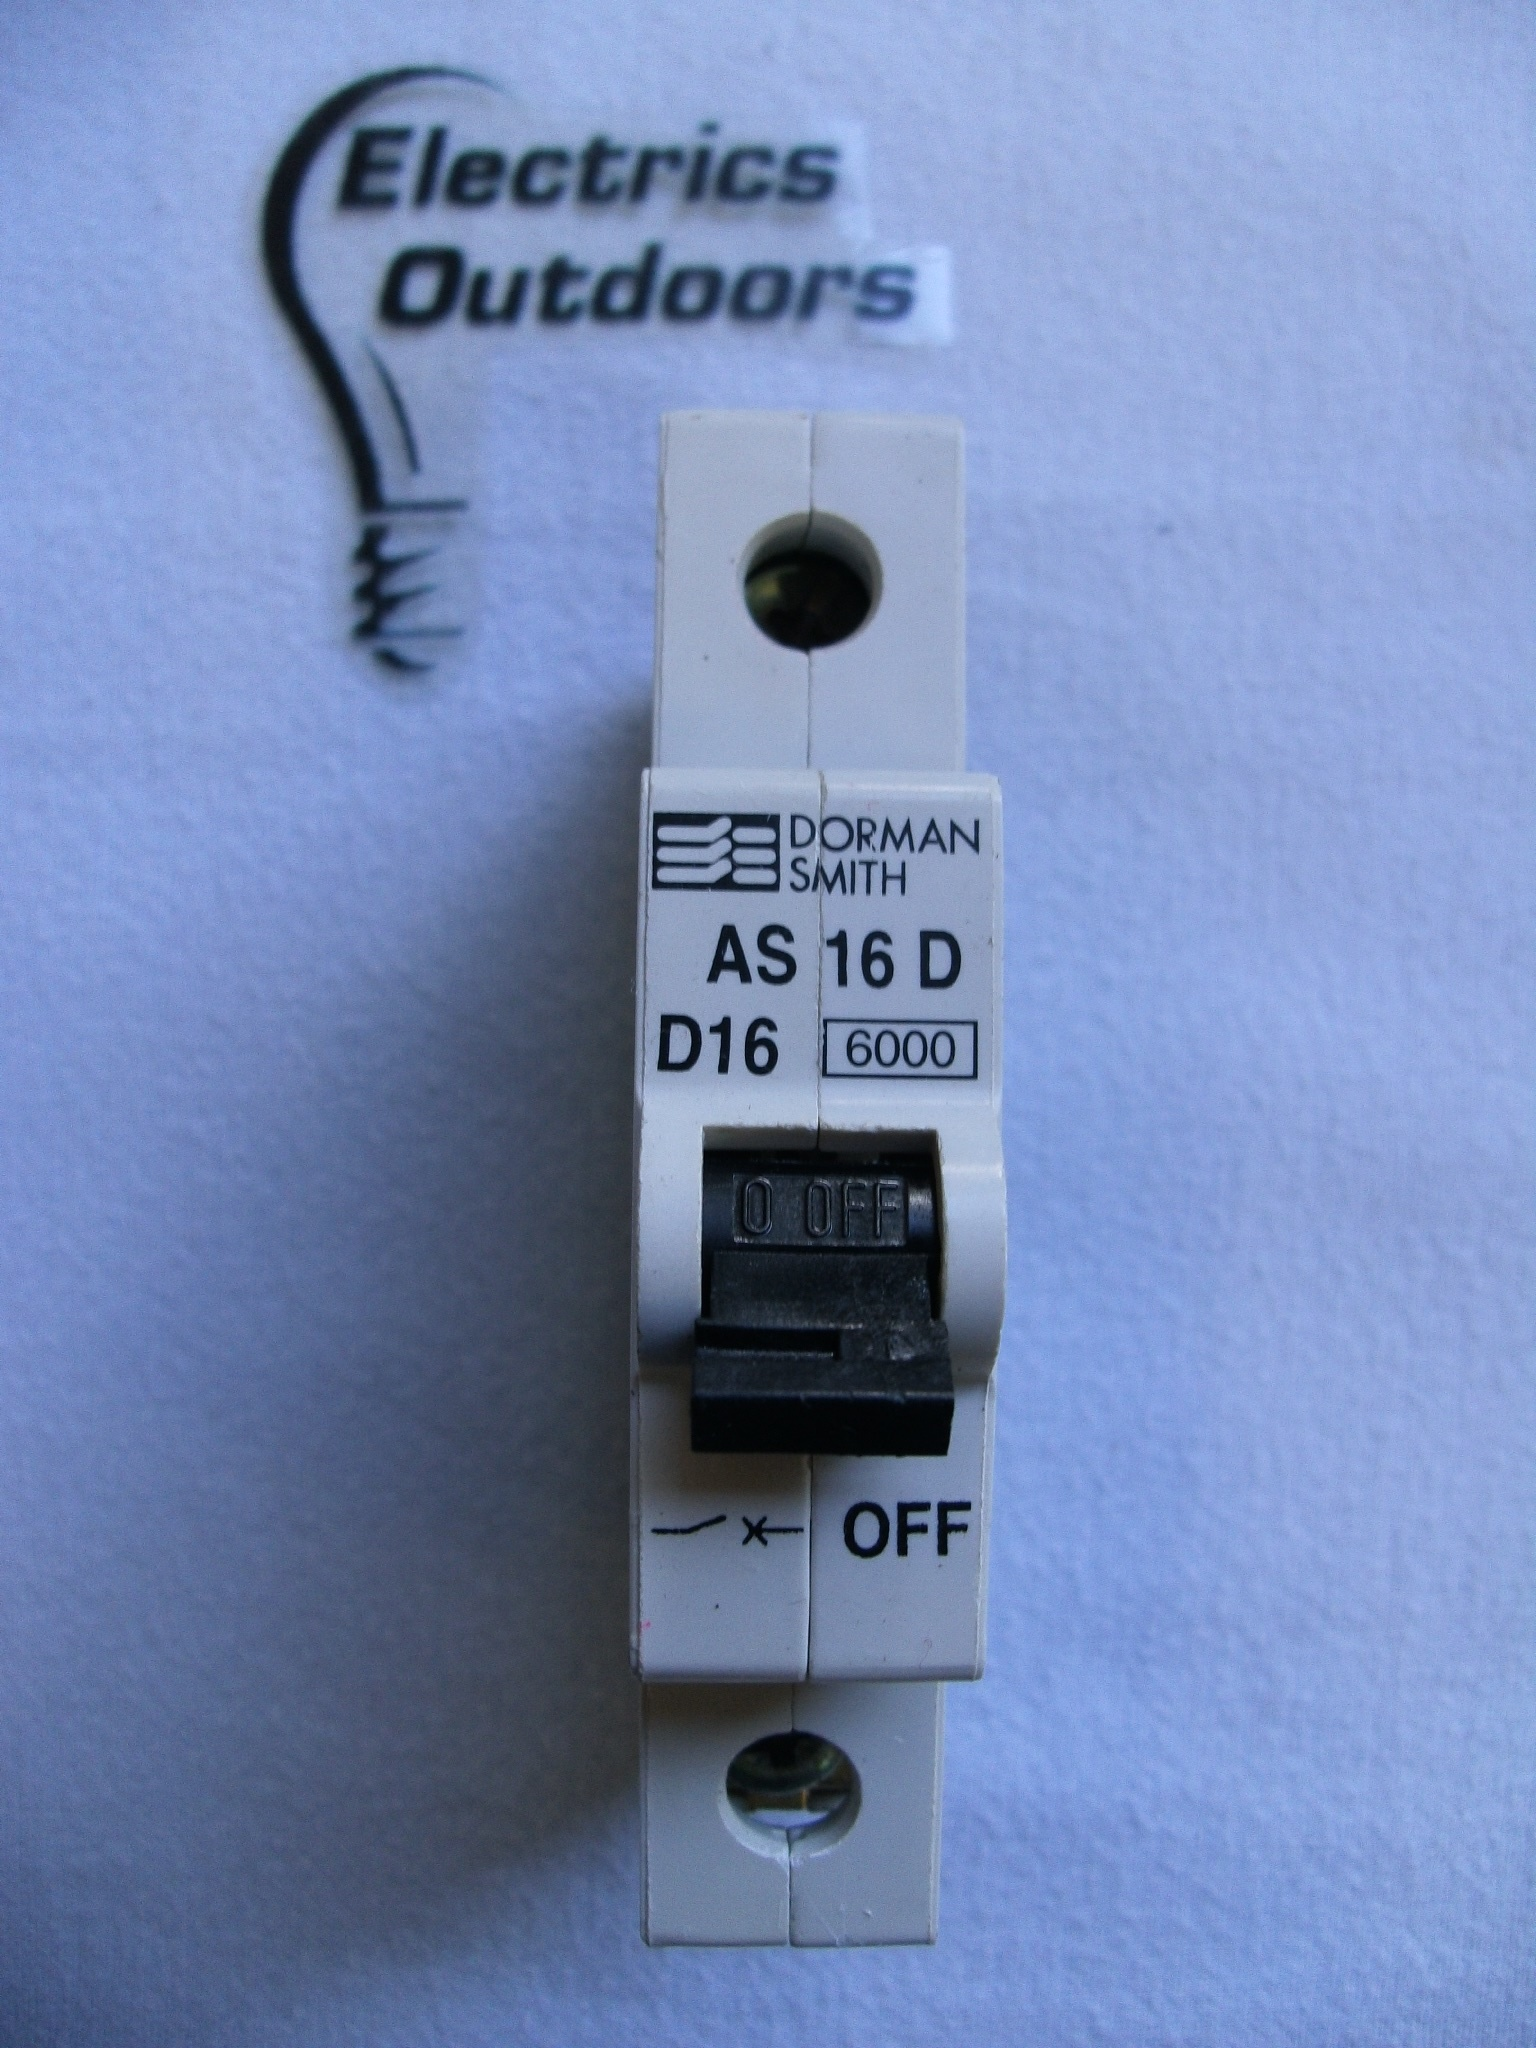 DORMAN SMITH 16 AMP TYPE D 6 kA MCB CIRCUIT BREAKER 230/400V AS16D BS EN 60898